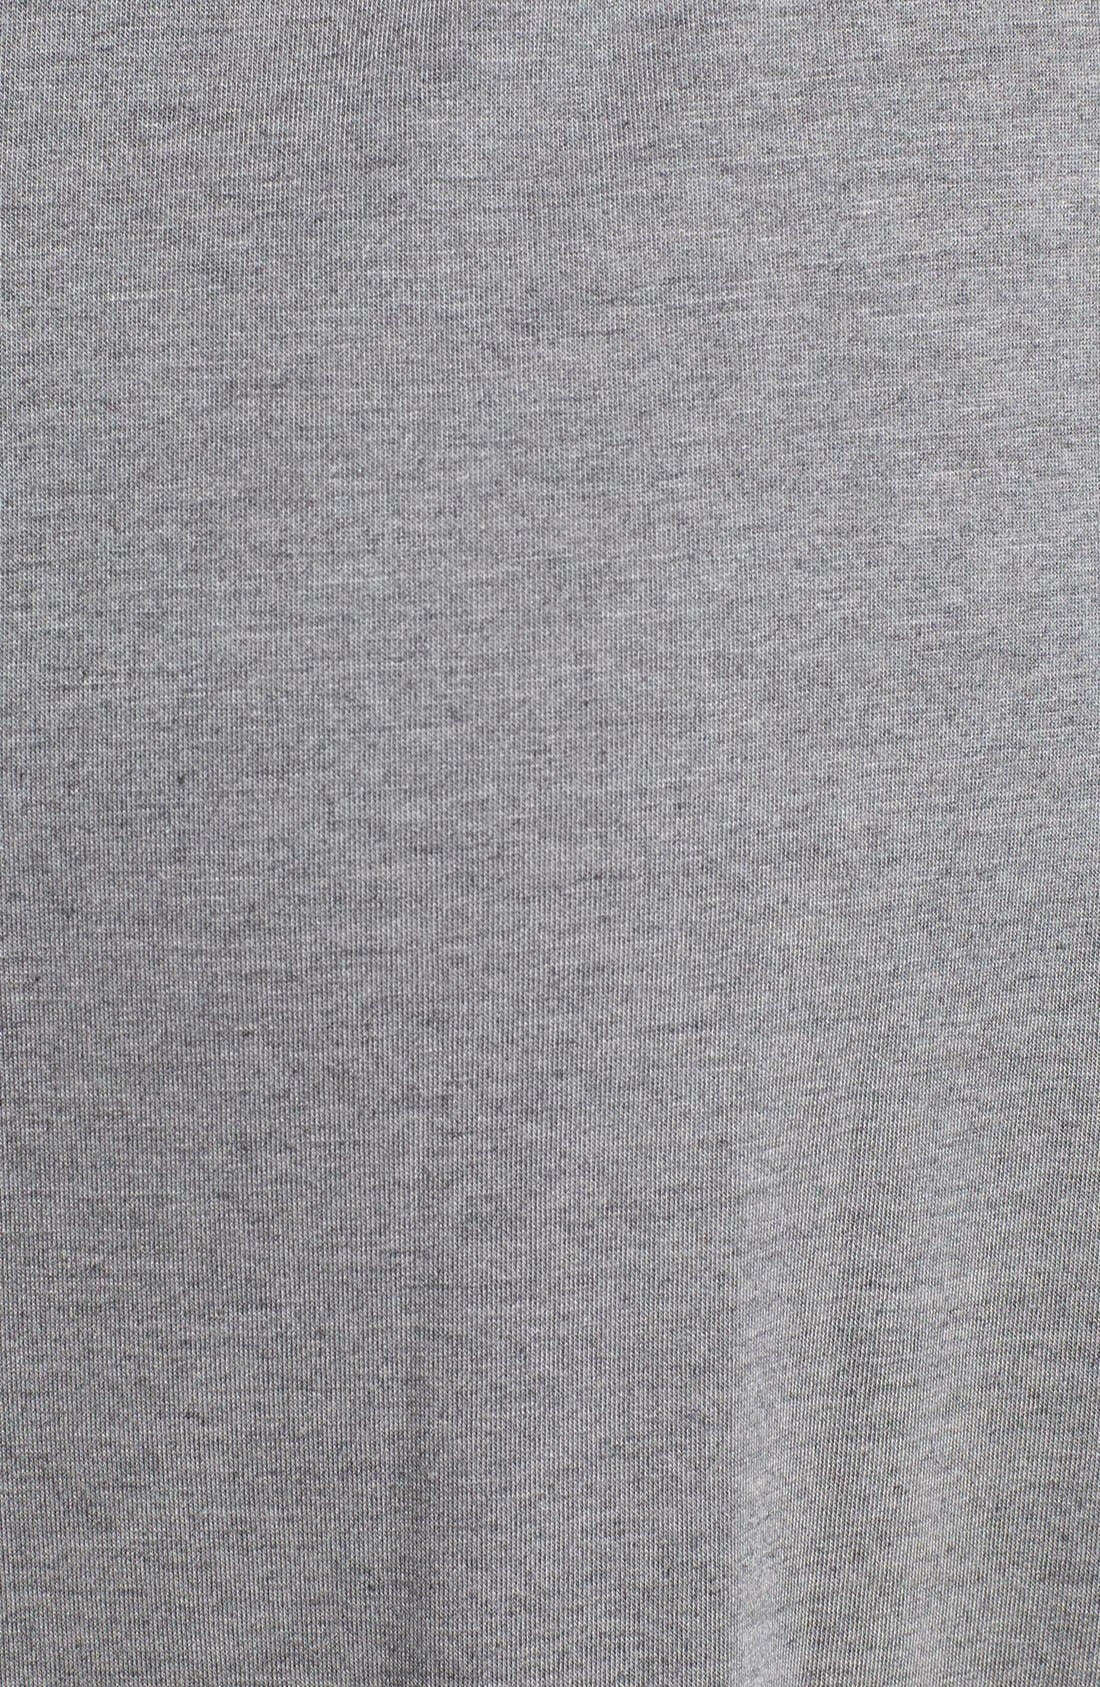 'Shangri La' Nightgown,                             Alternate thumbnail 2, color,                             HEATHER GREY